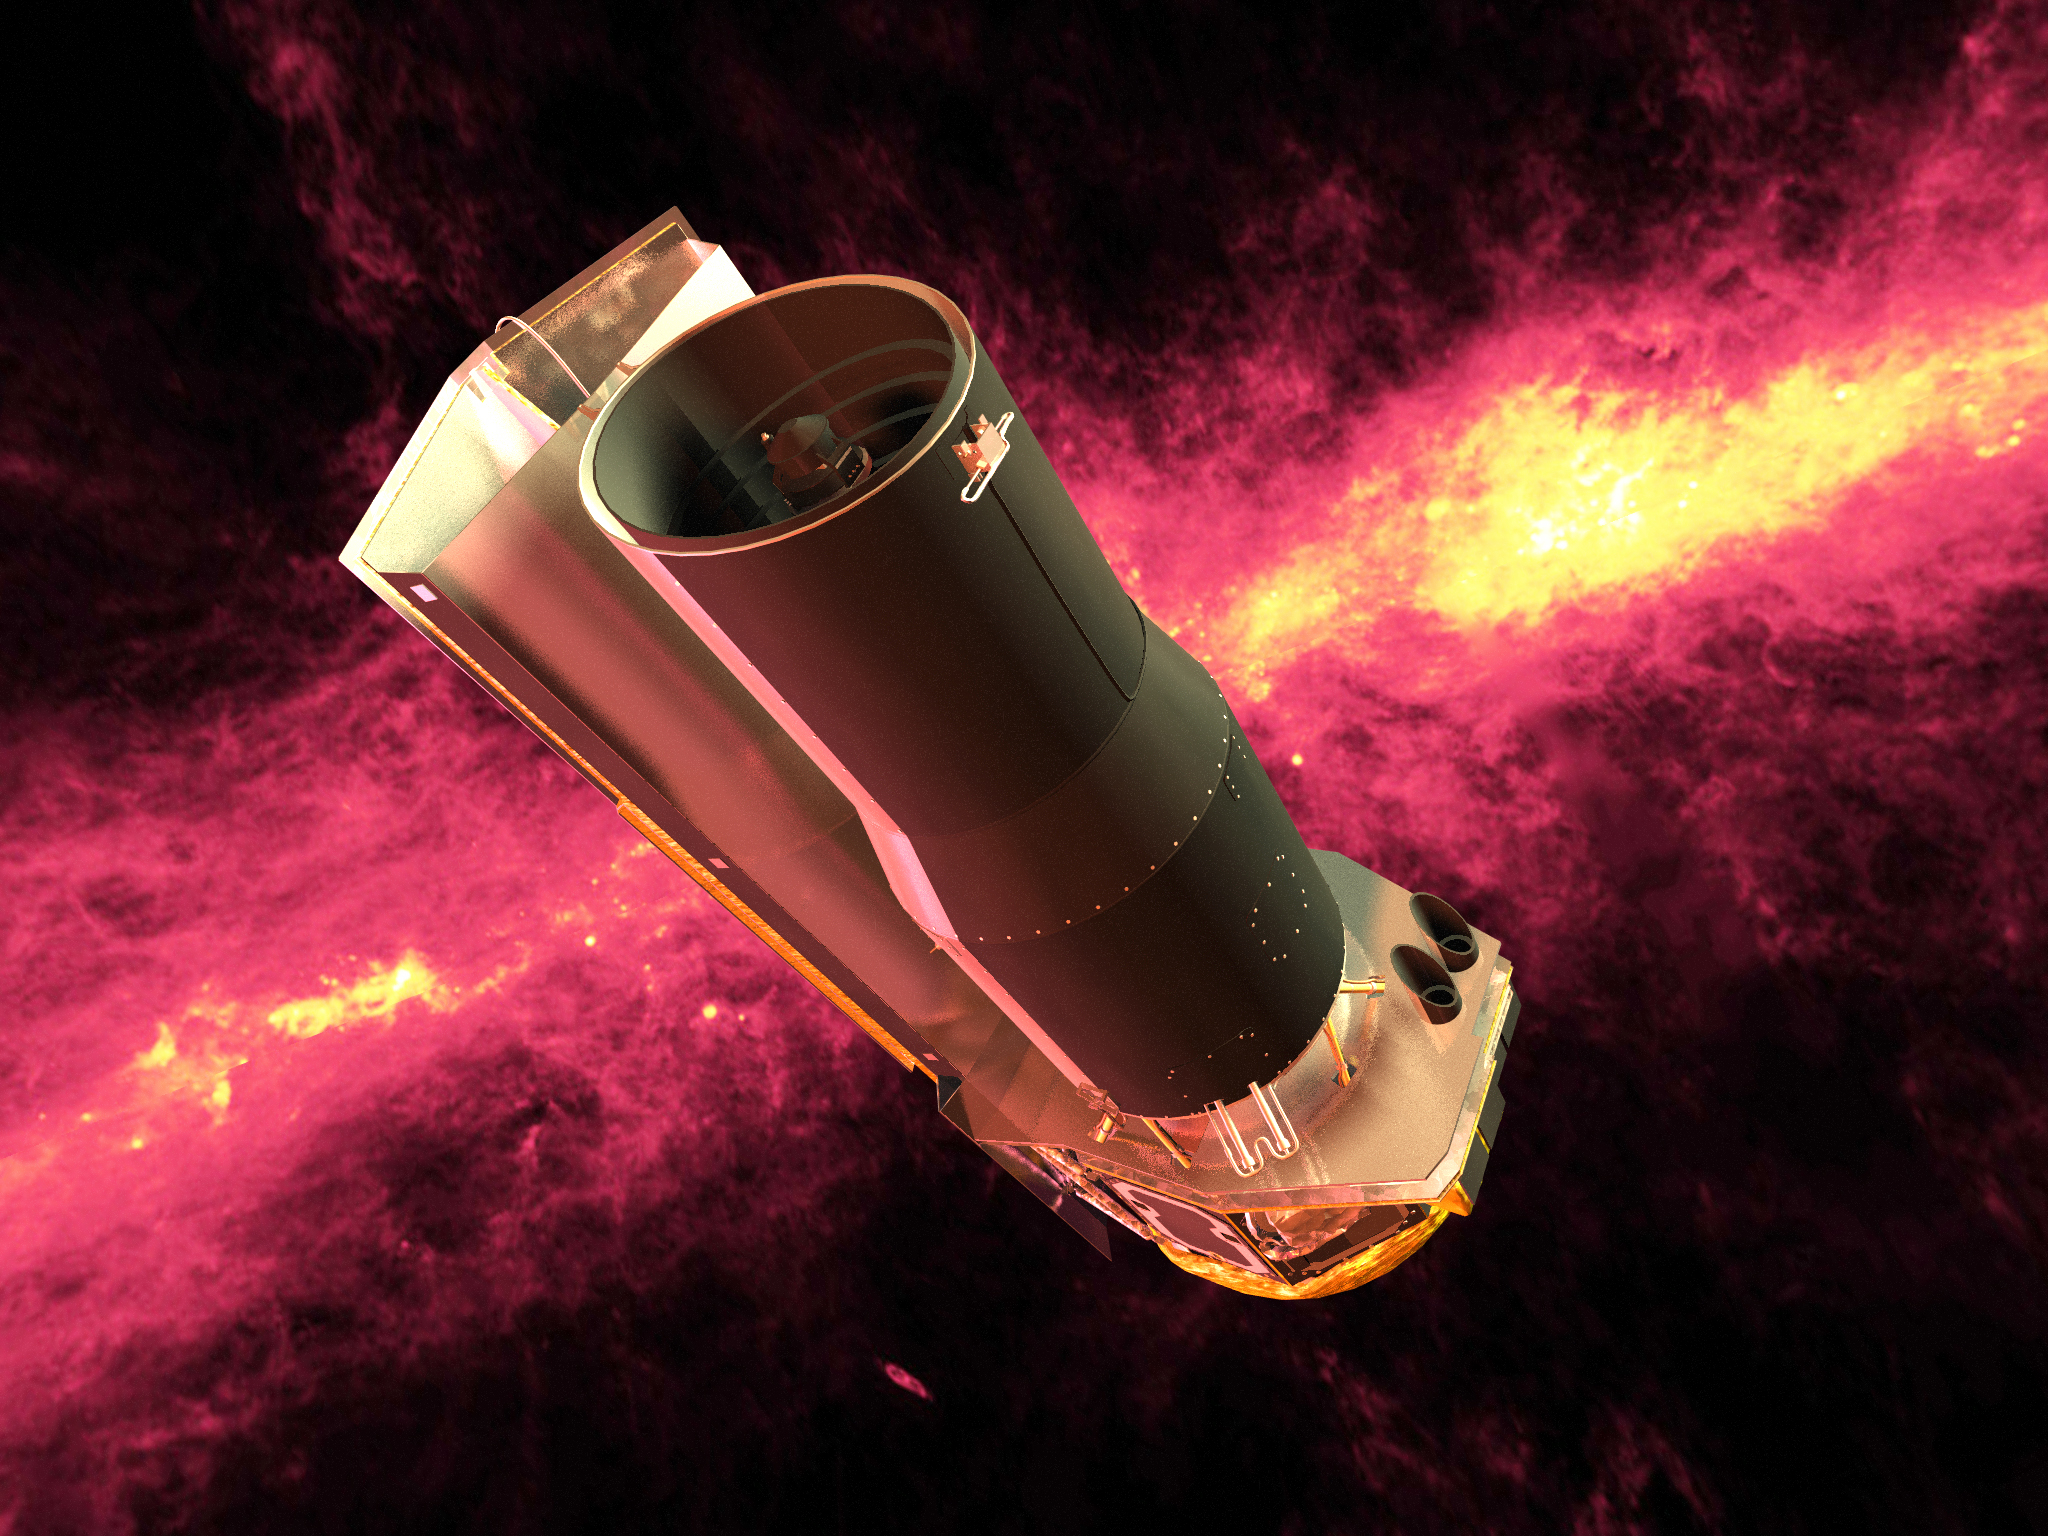 Spitzer Space Telescope  By NASA/JPL-Caltech - http://www.spitzer.caltech.edu/images/3072-SIRTF-Spitzer-Rendered-against-an-Infrared-100-Micron-Sky, Public Domain, https://commons.wikimedia.org/w/index.php?curid=85585